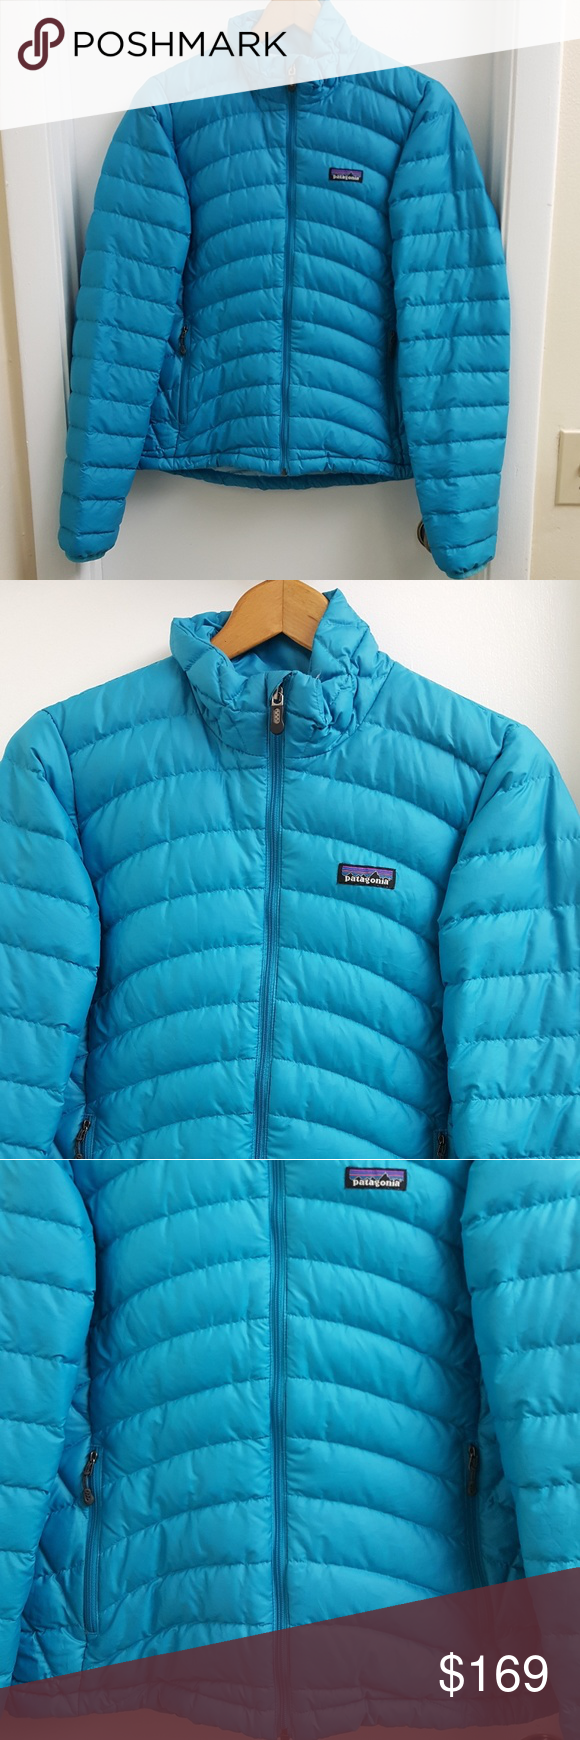 Patagonia down puffer jacket size medium (With images